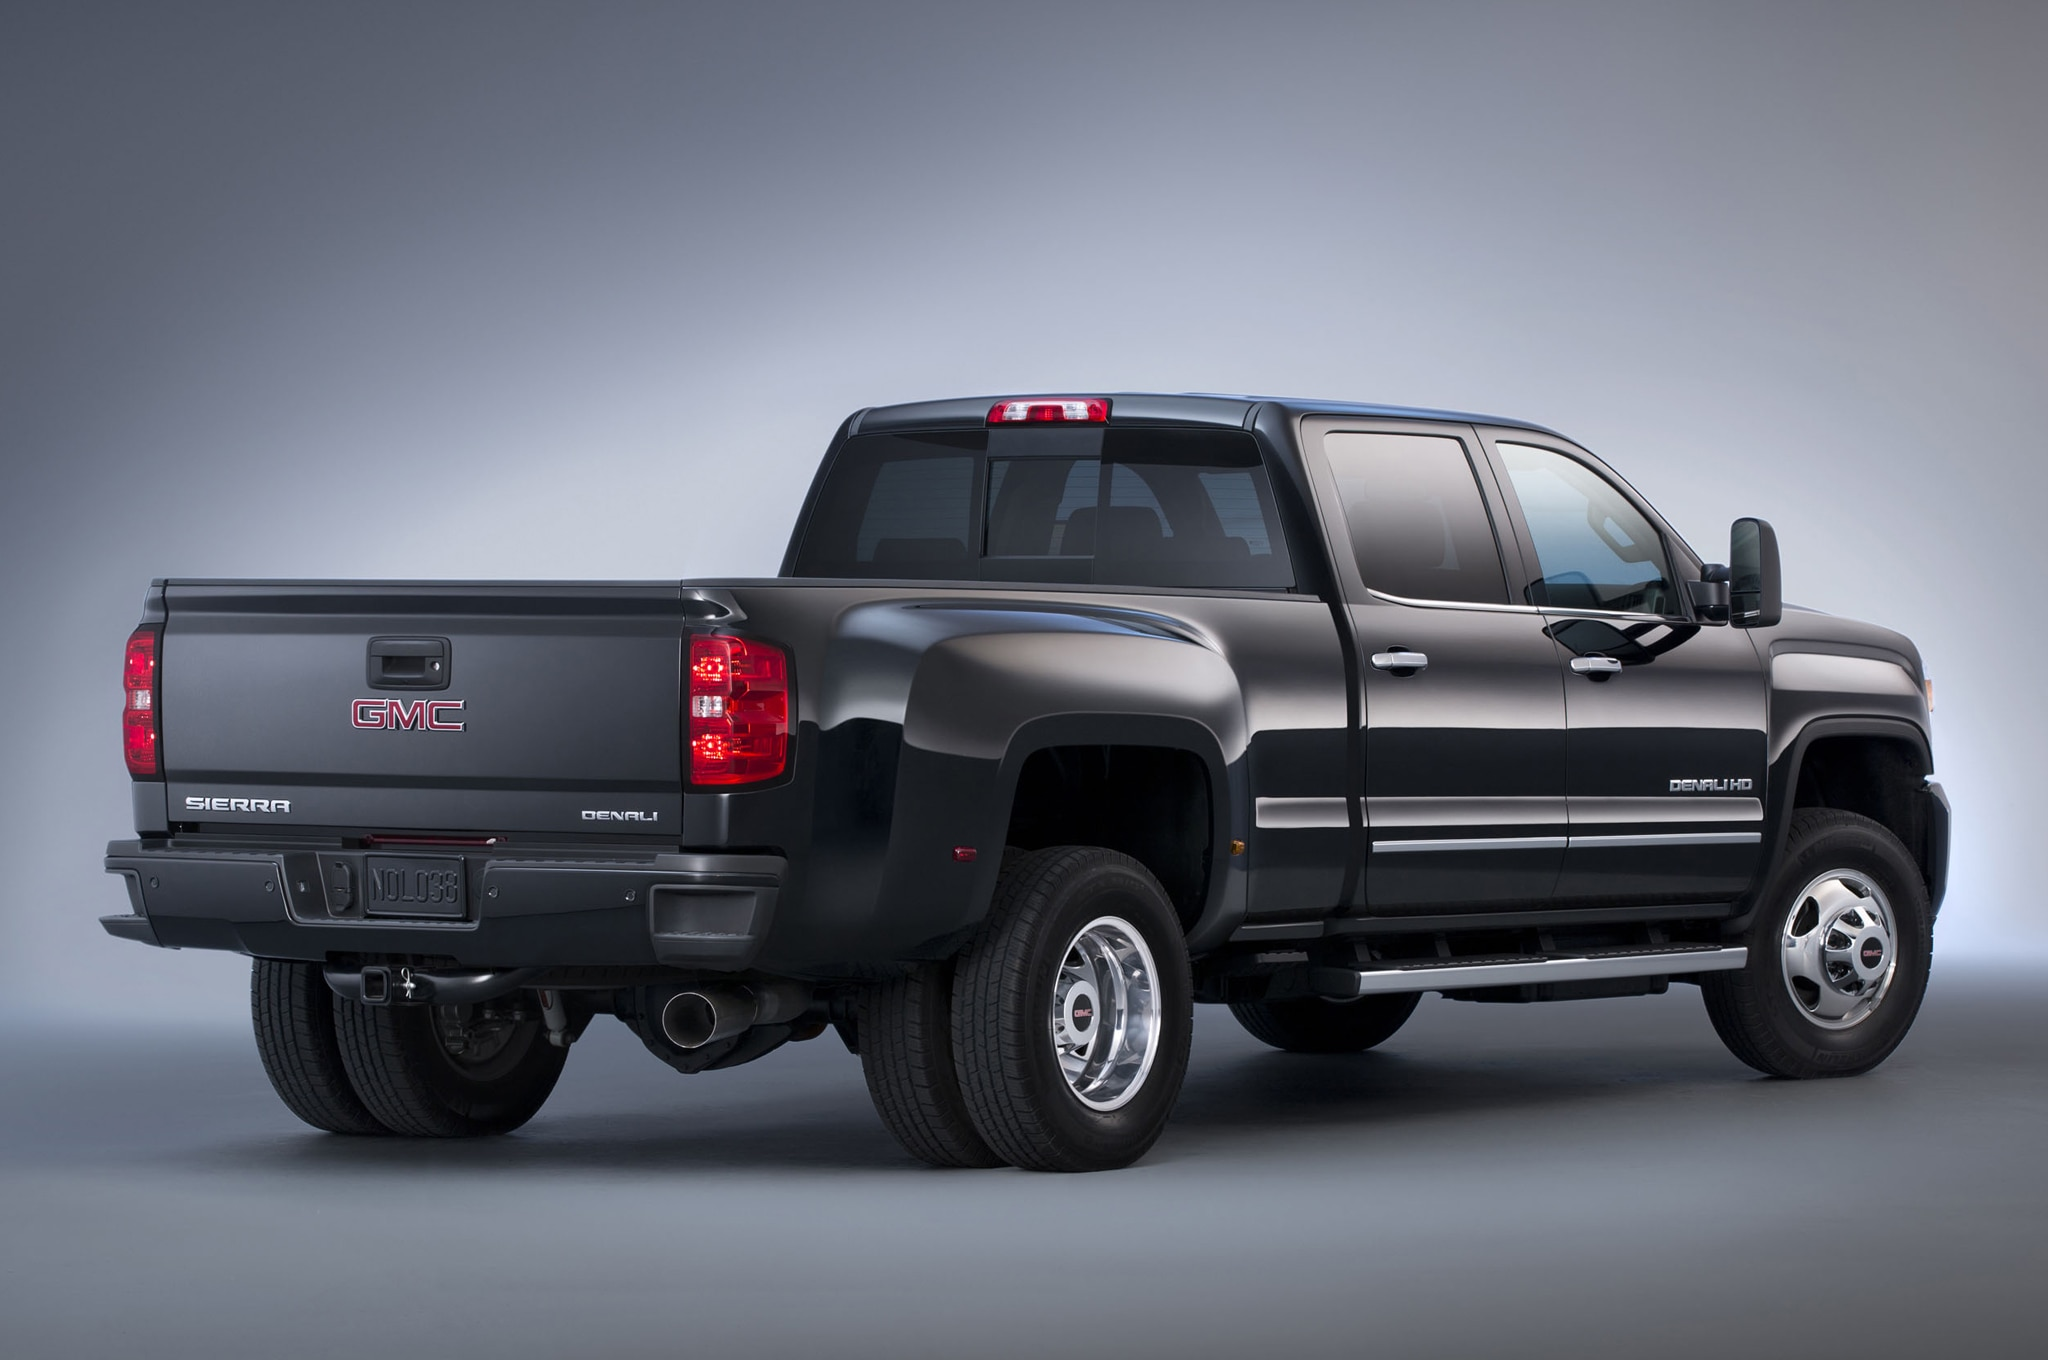 2015 GMC Sierra Denali 3500HD rear view